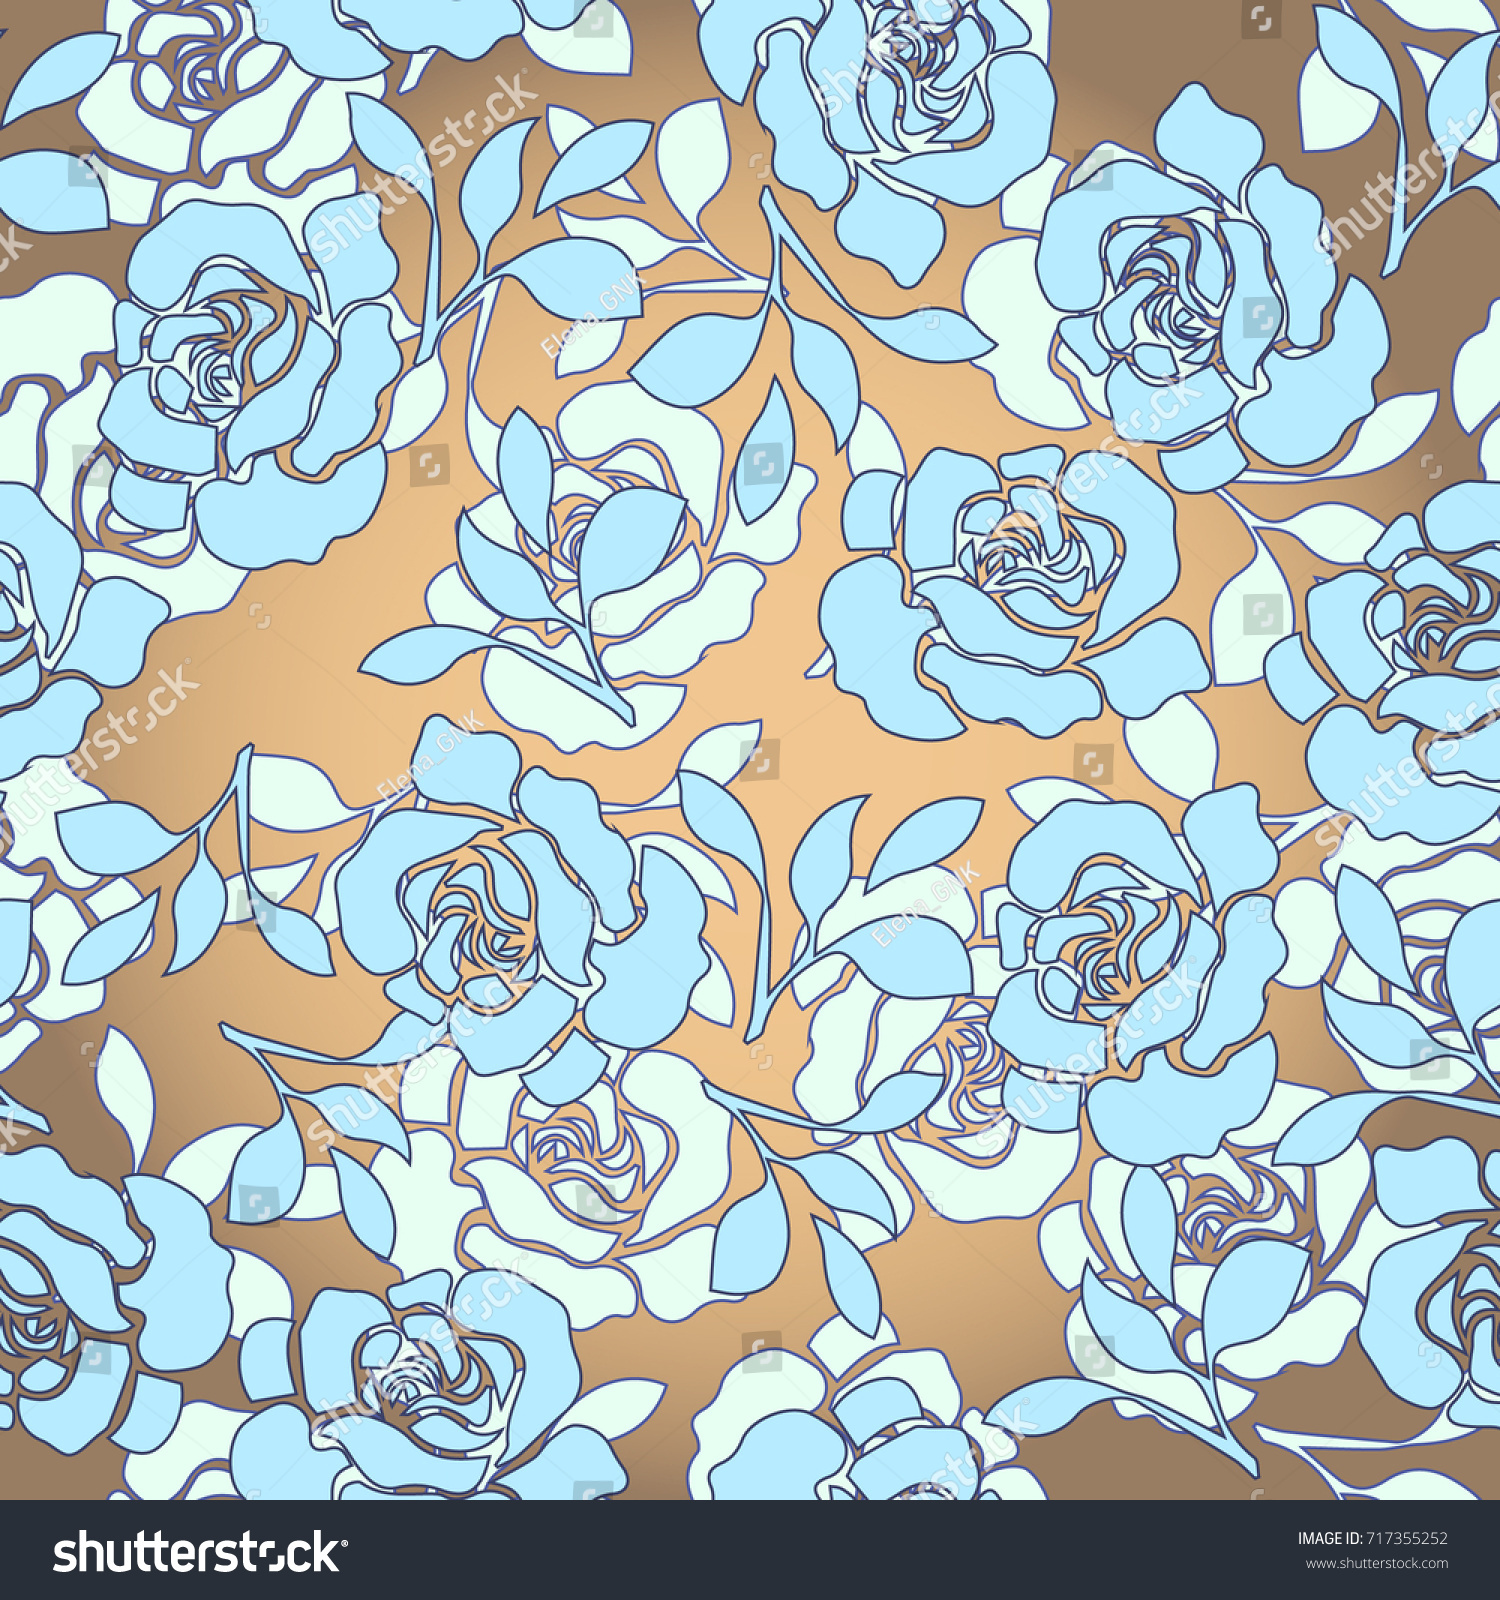 Vector Draw Rose Flower Pattern Seamless Stock Vector Royalty Free